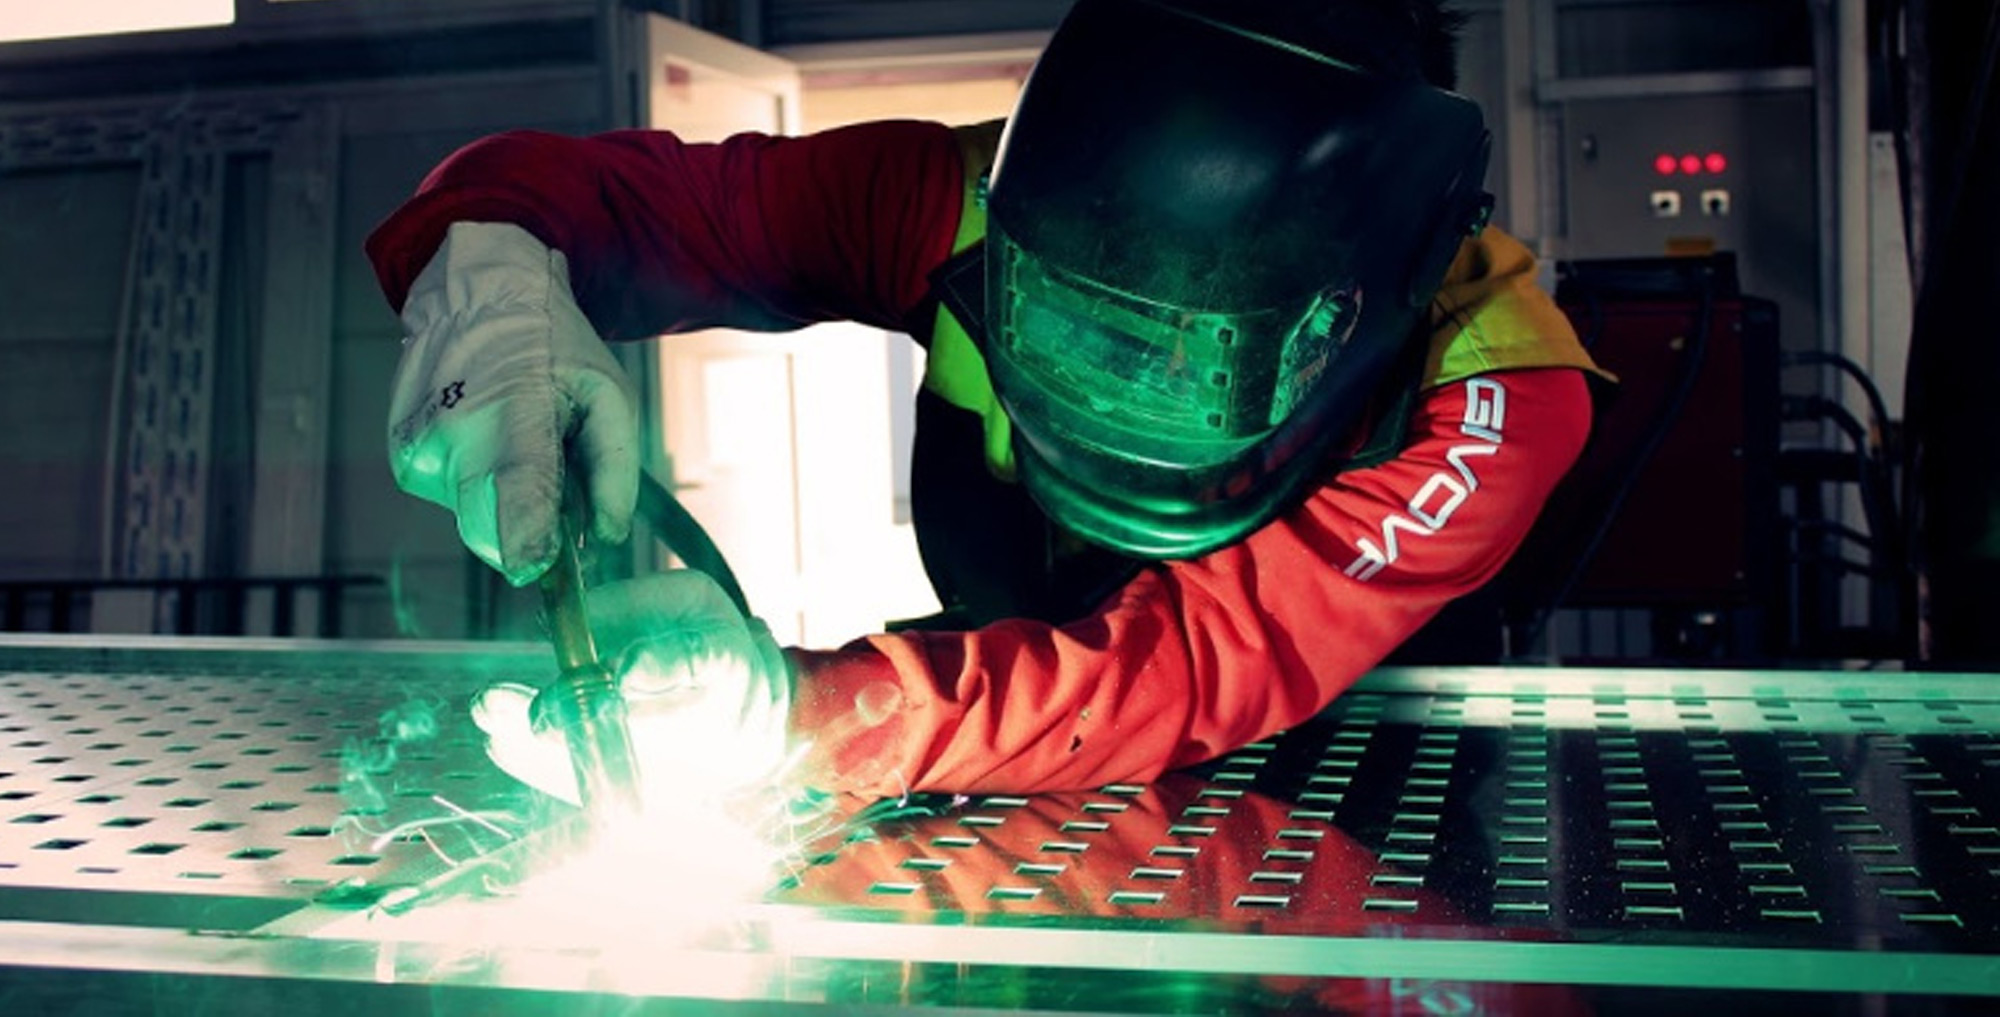 Man welding metal within industrial environment wearing helmet, suit and gloves